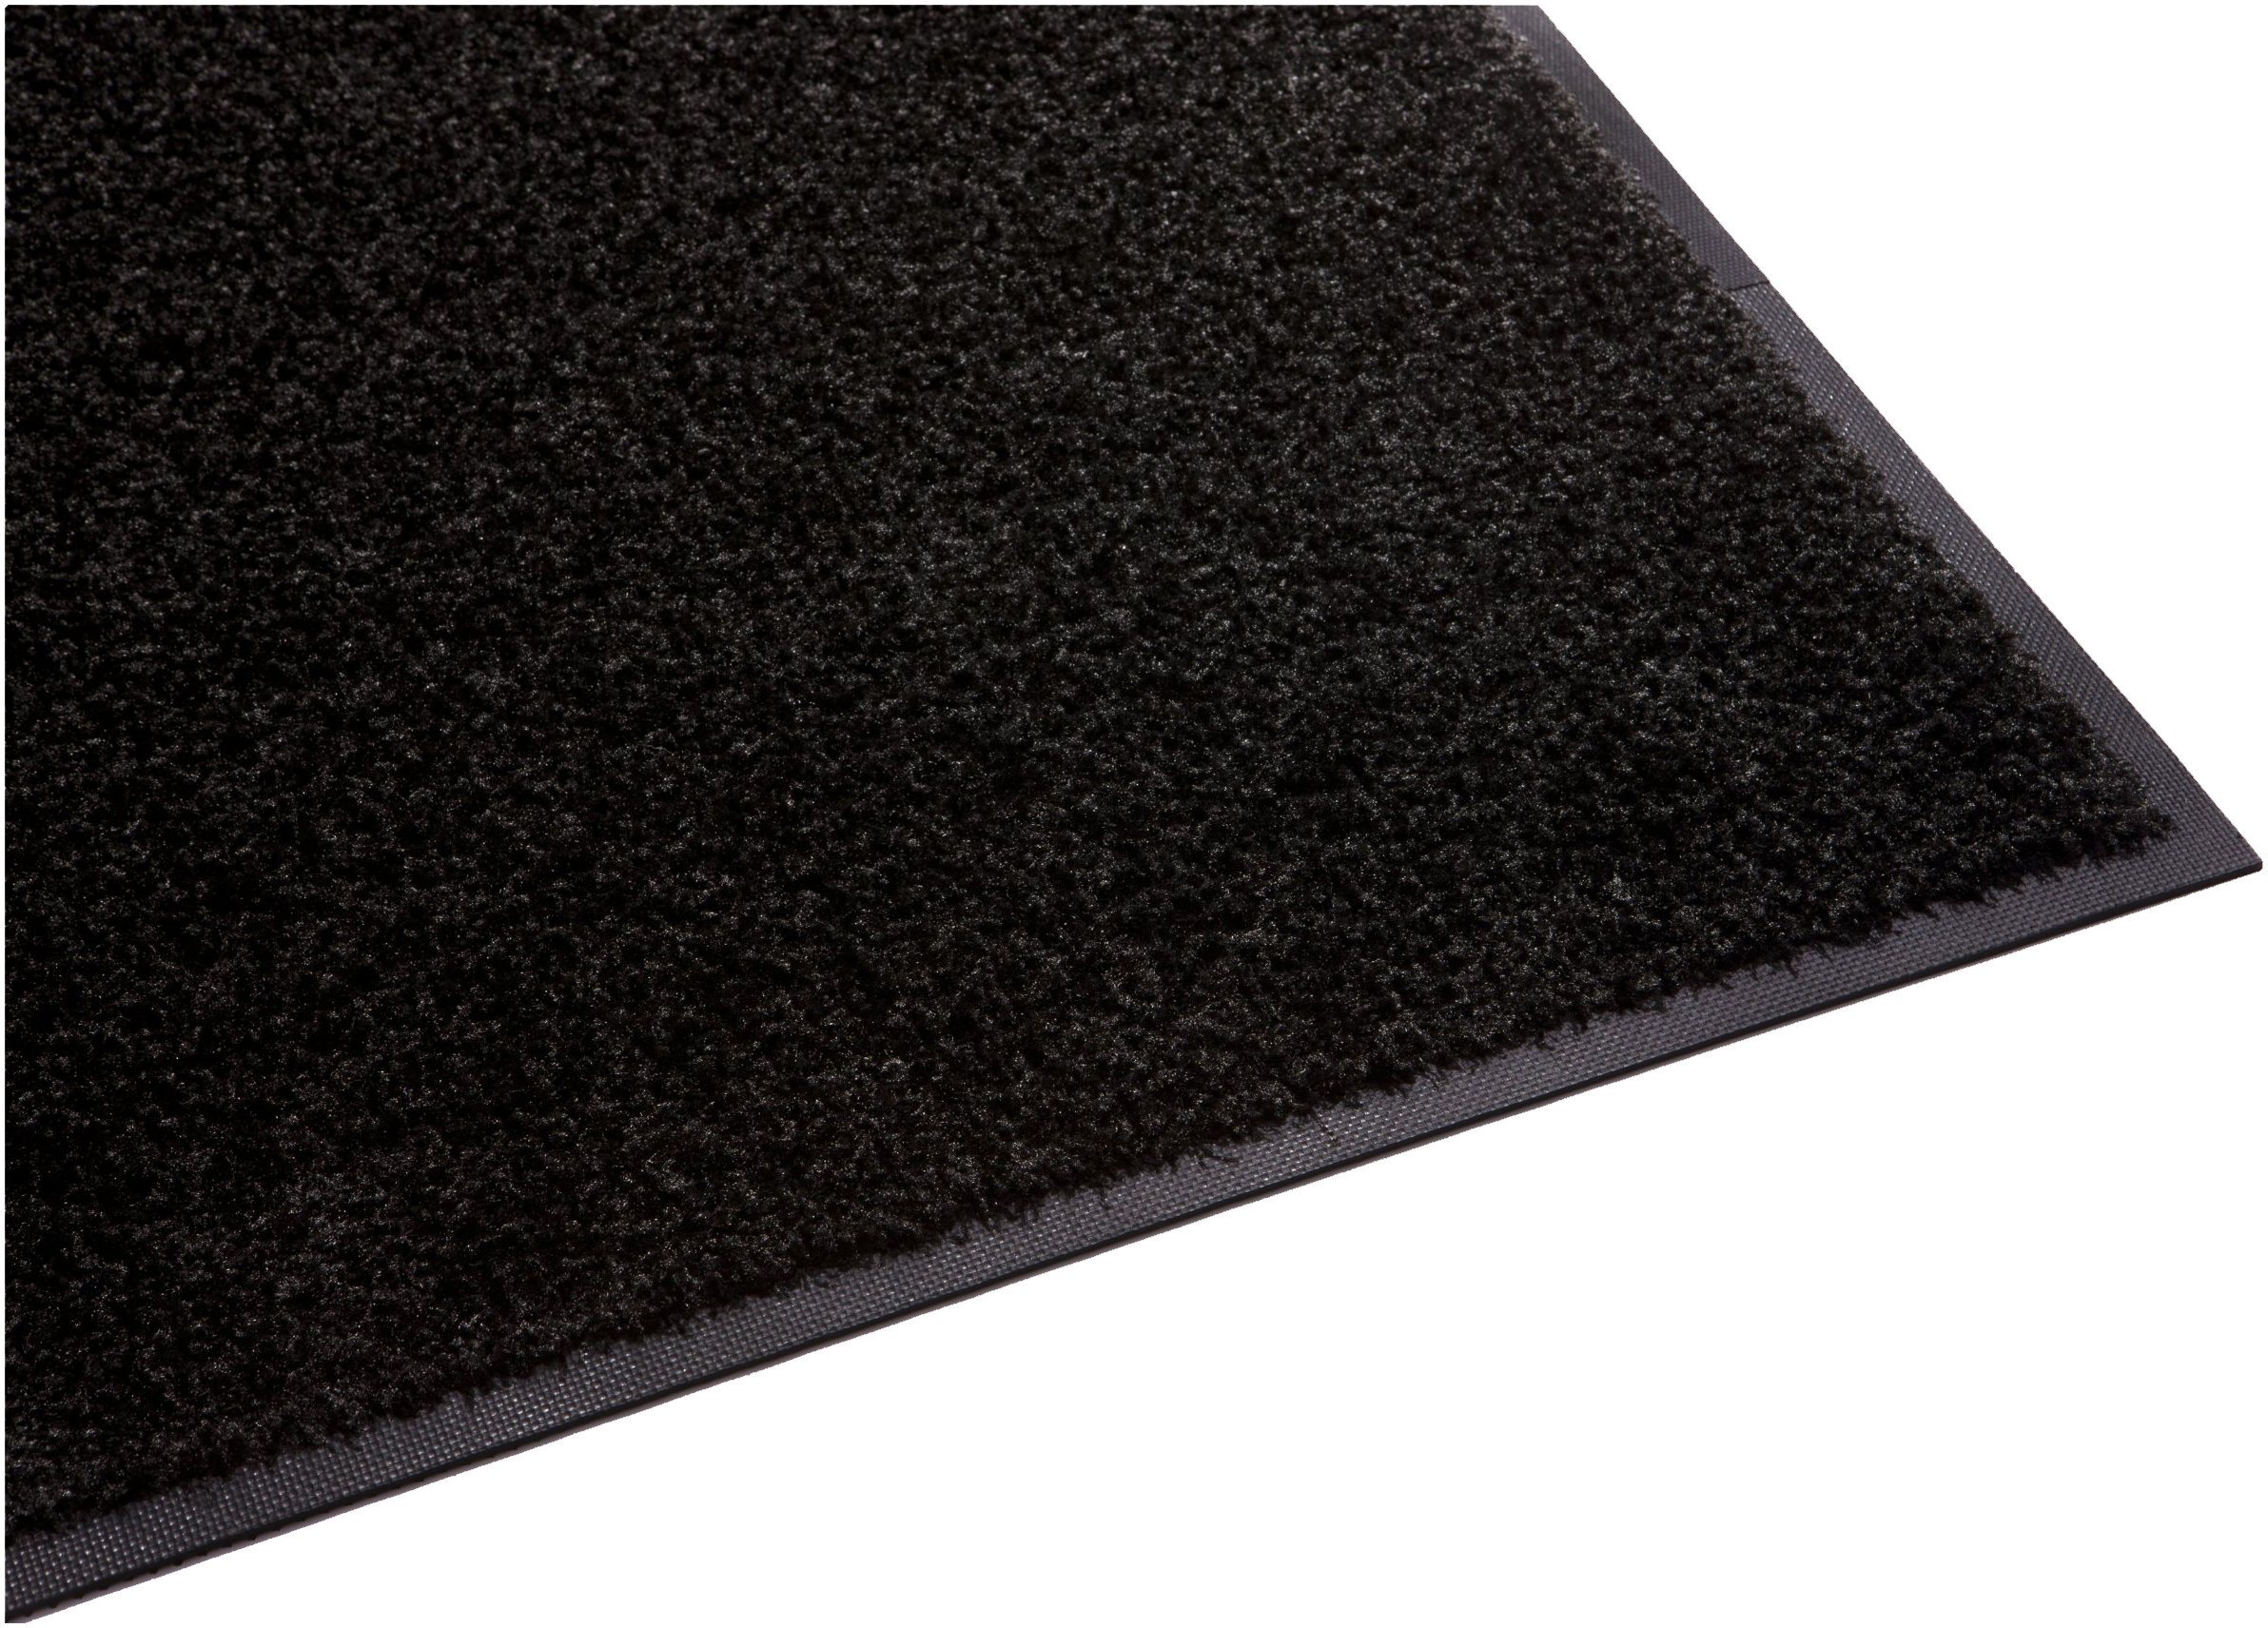 Guardian Platinum Series Indoor Wiper Floor Mat, Rubber with Nylon Carpet, 6'x8', Black